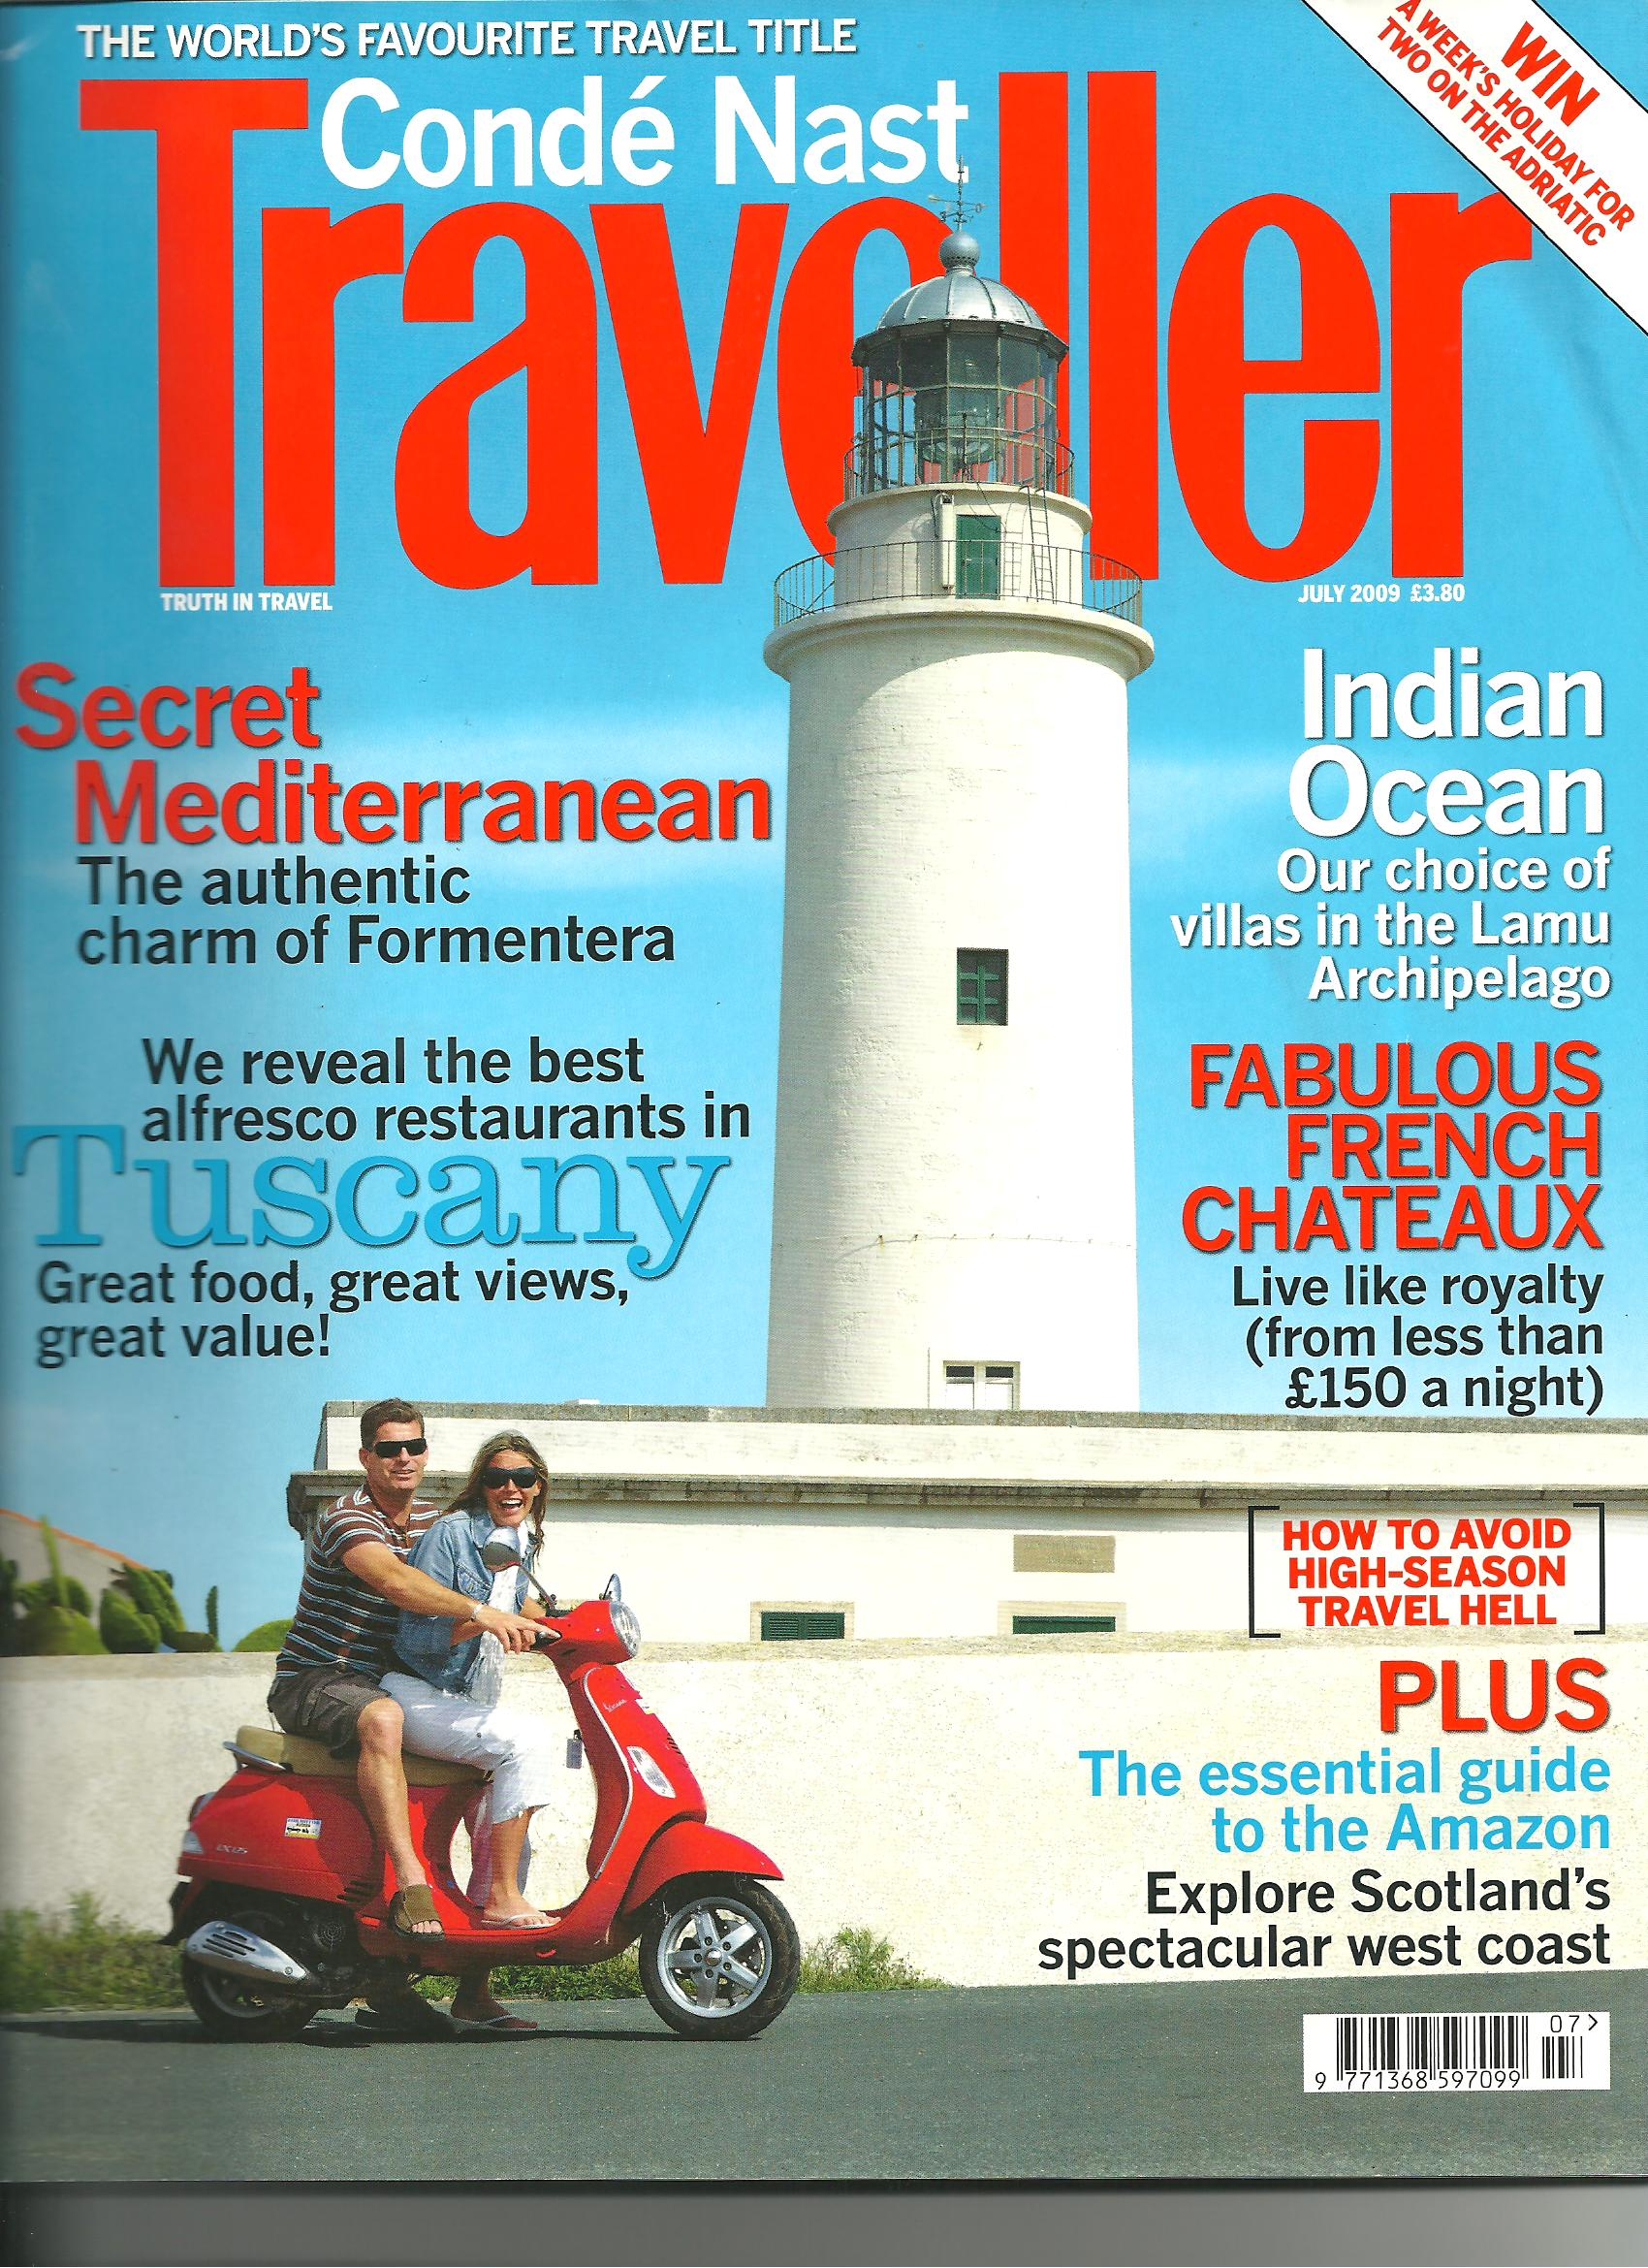 CONDE NAST TRAVELLER 2012 - GREECE